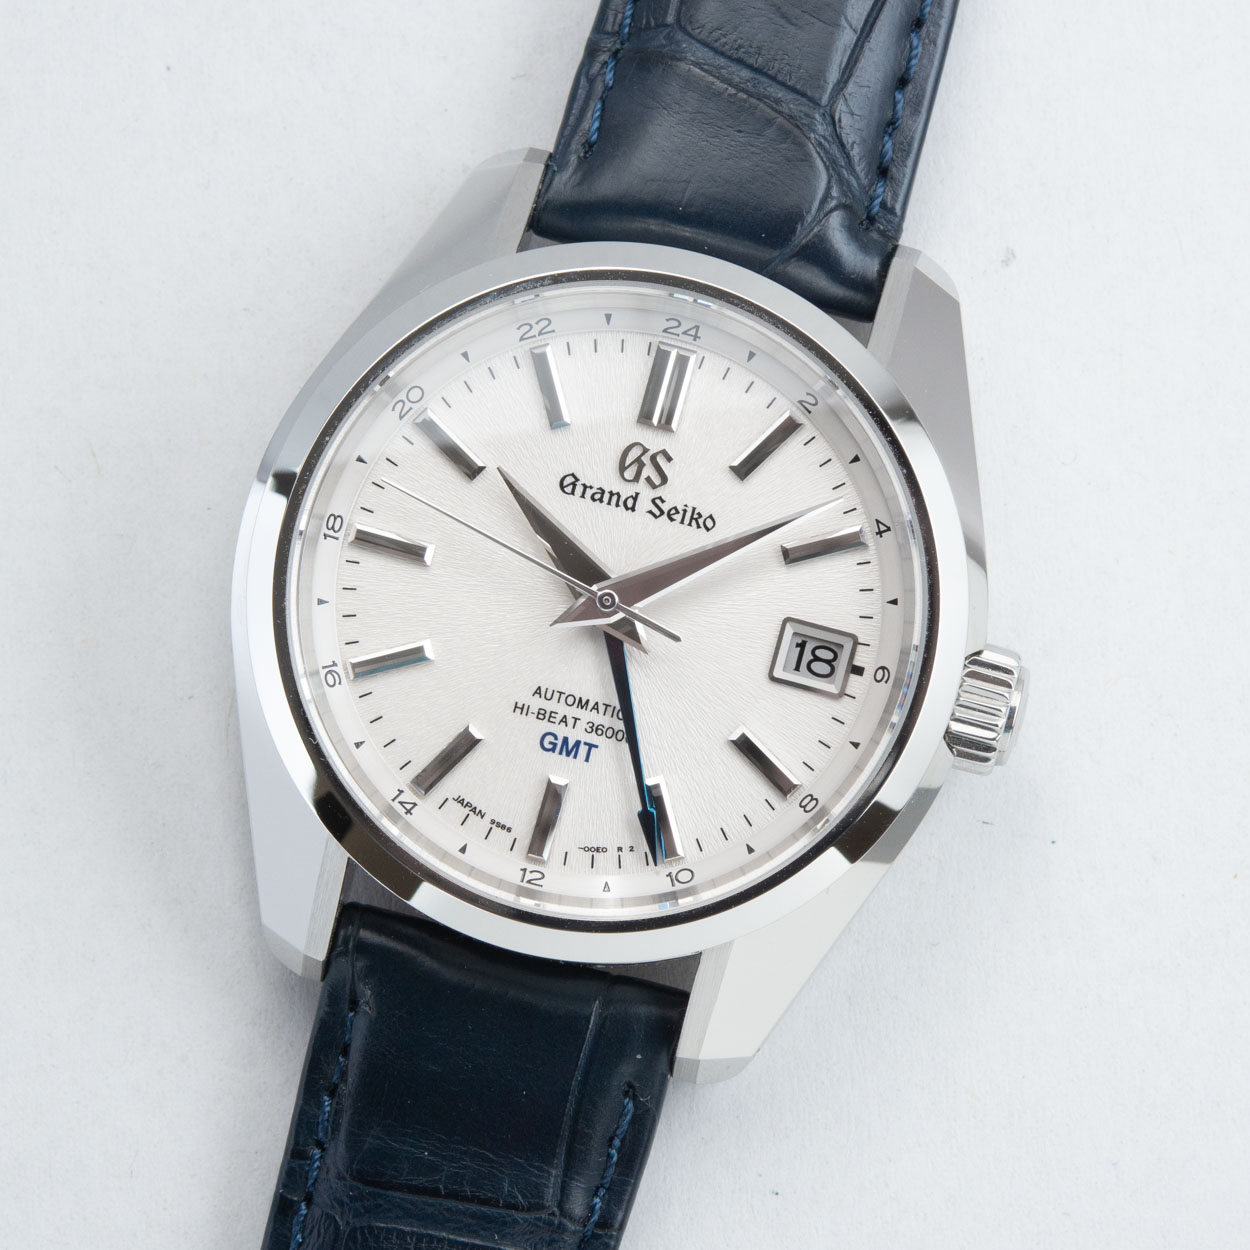 hot sales 46069 496f0 The Snowflake - Grand Seiko's Most Wanted (And Why I Didn't ...